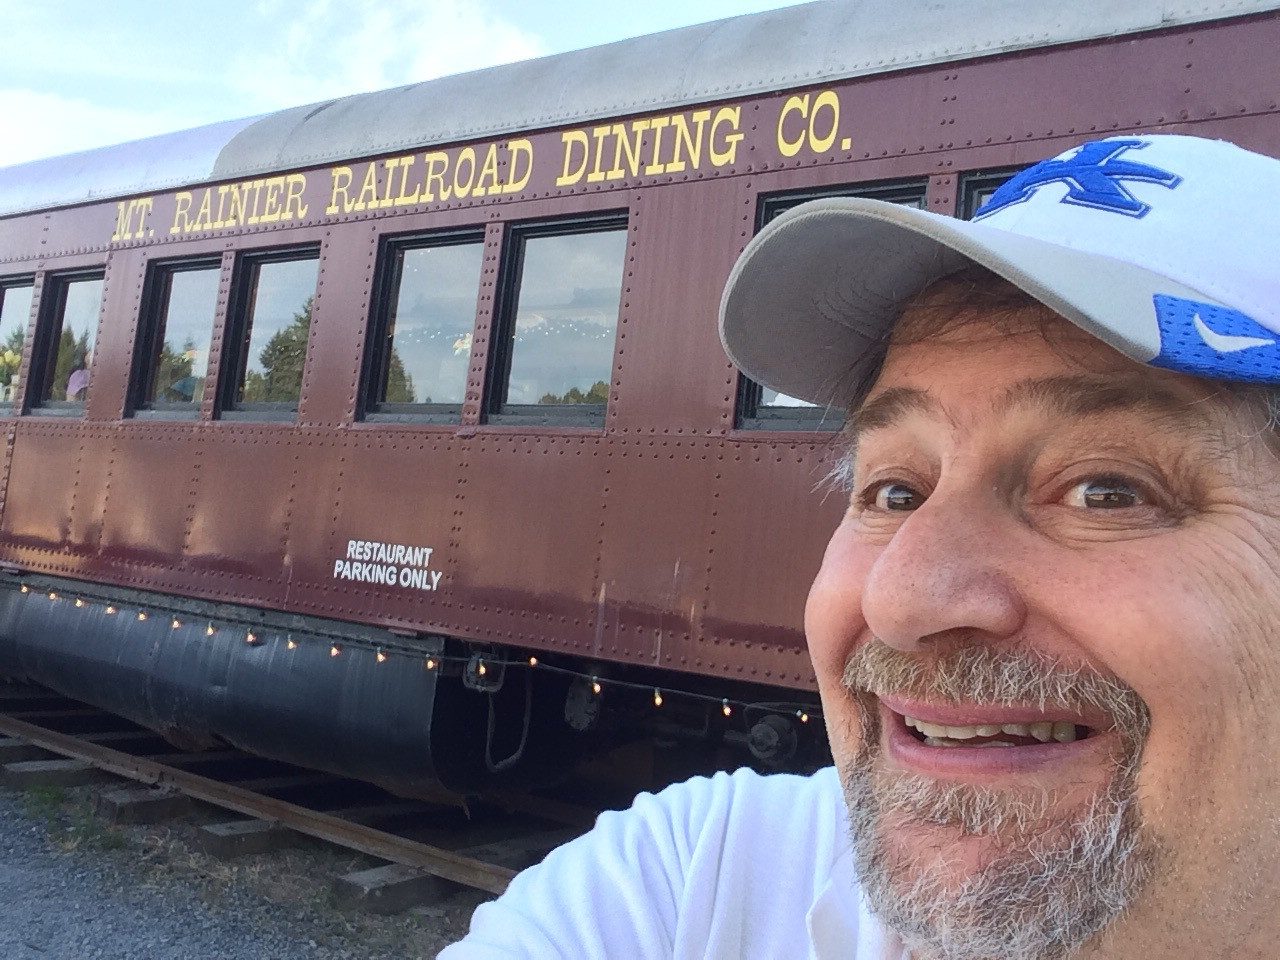 RailroadDiner